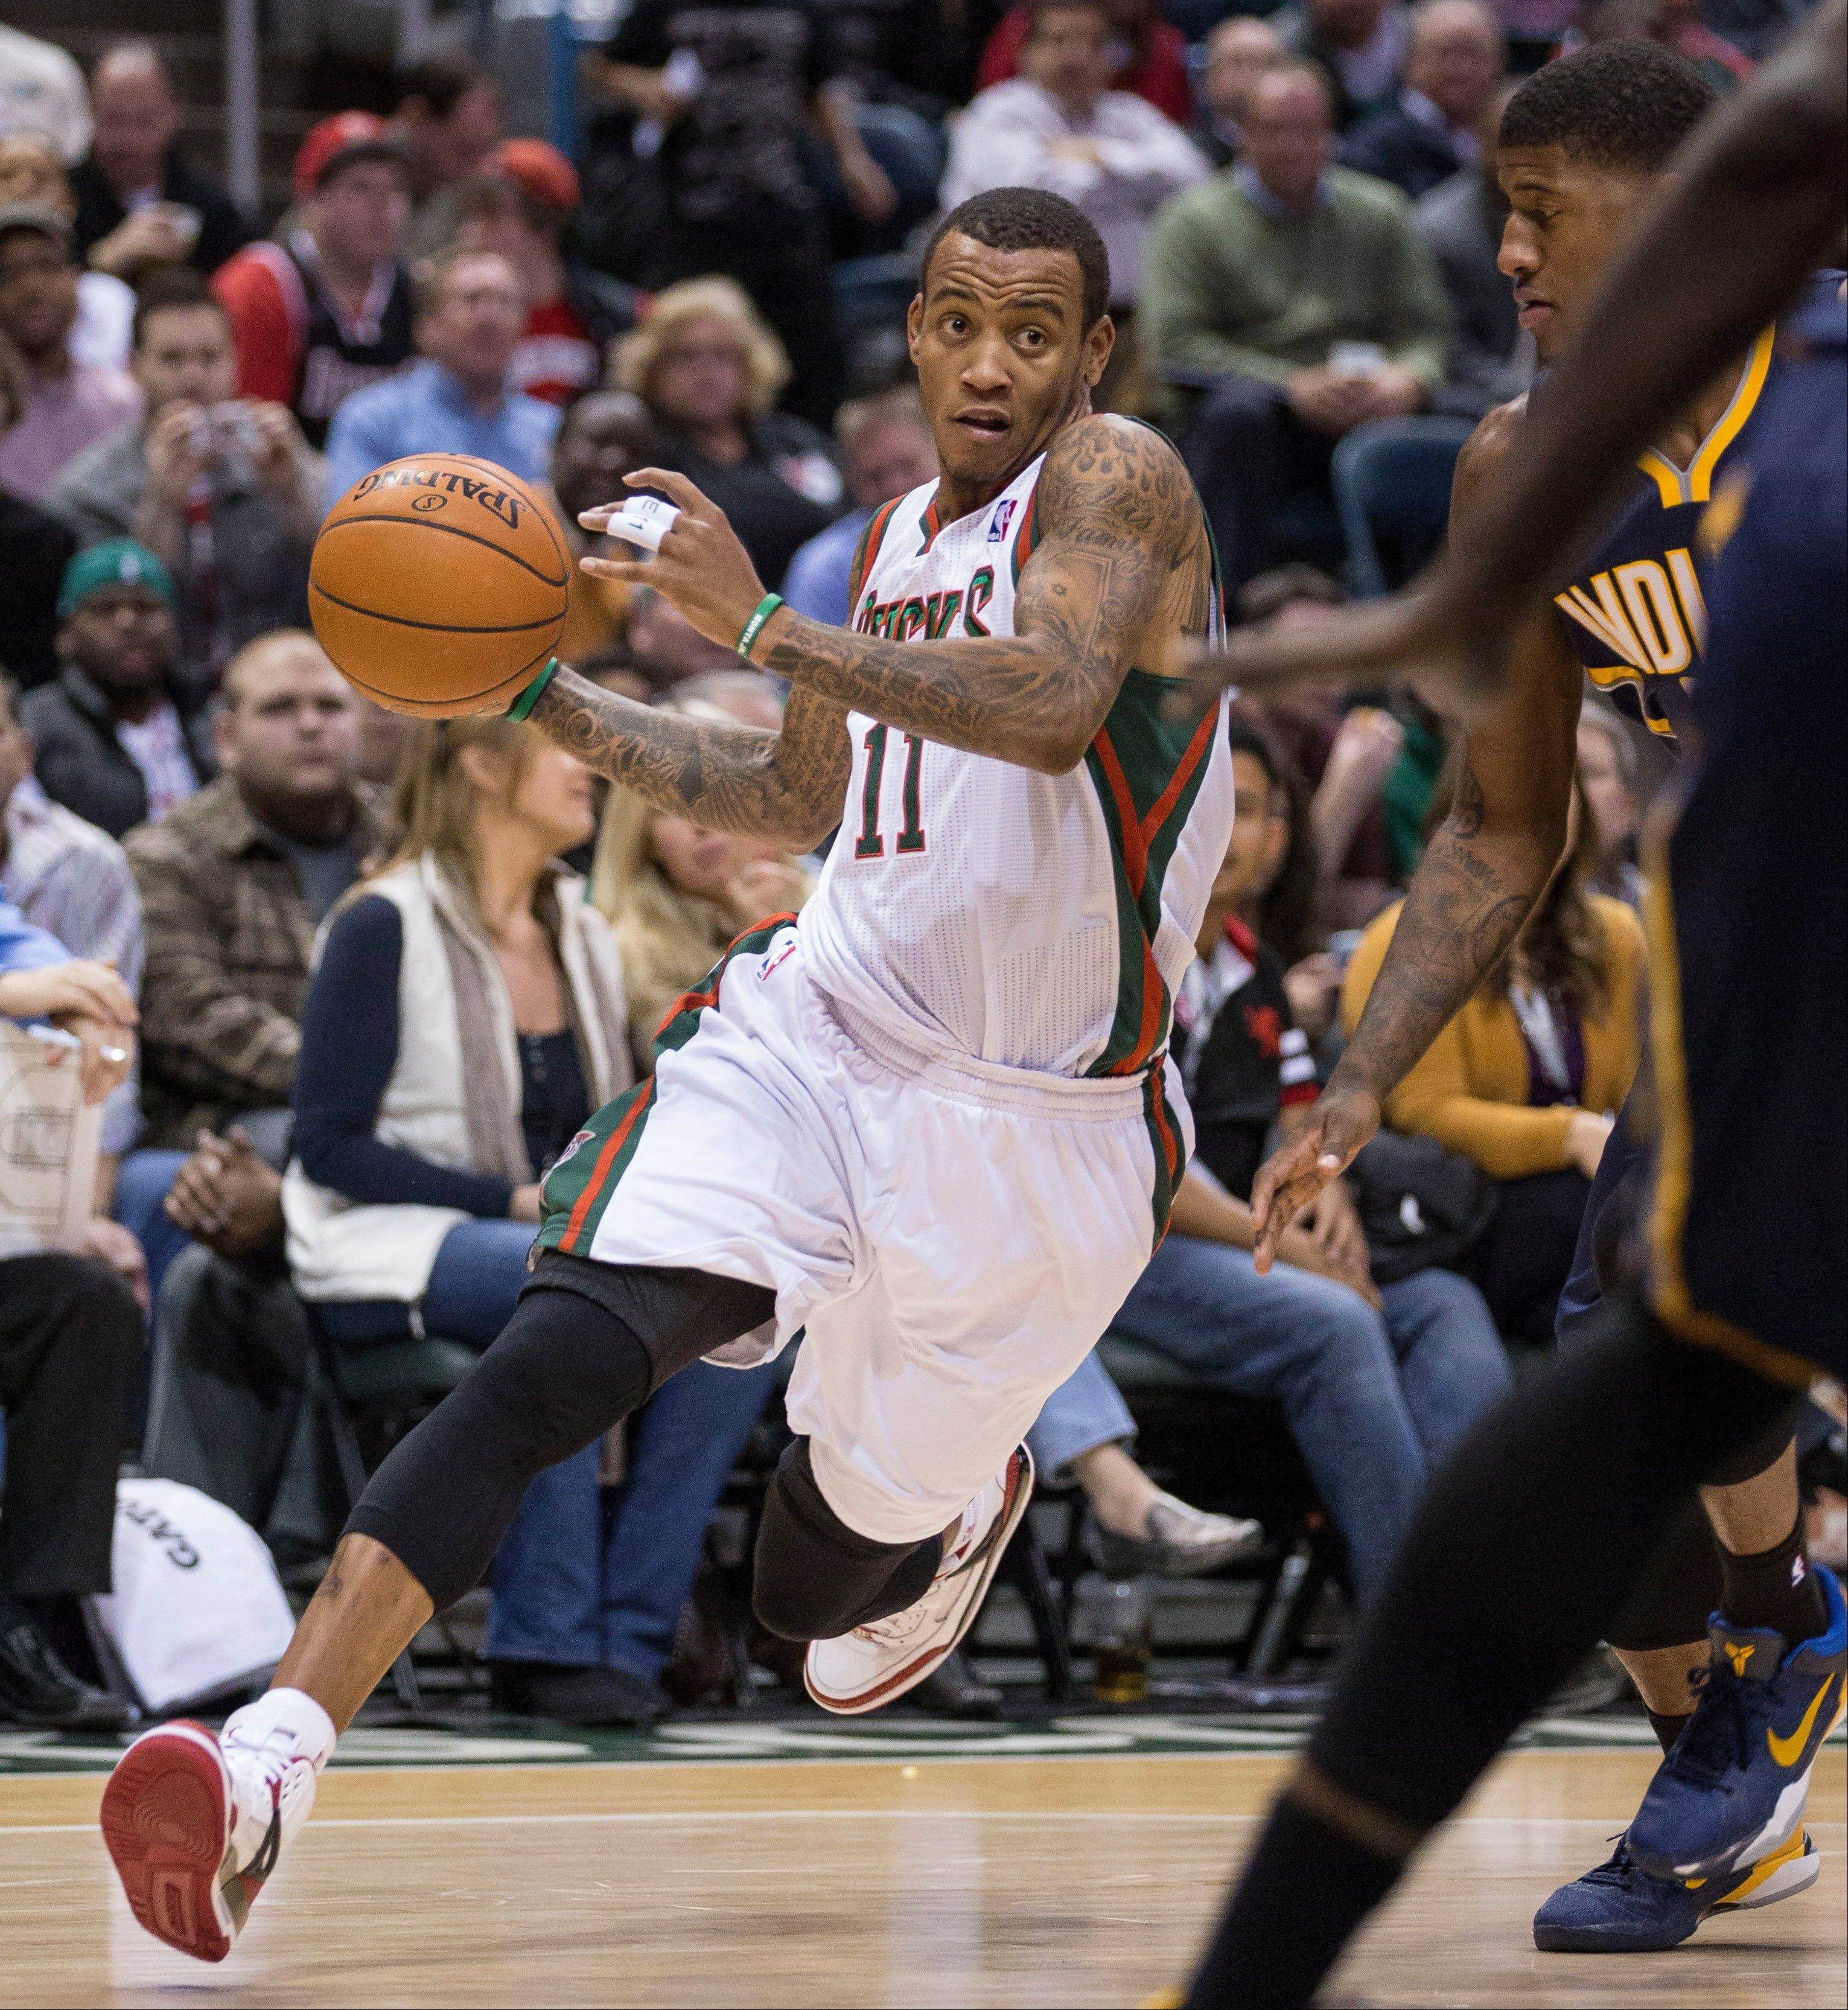 The Milwaukee Bucks' Monta Ellis drives on the Indiana Pacers defense Wednesday during the first half in Milwaukee.